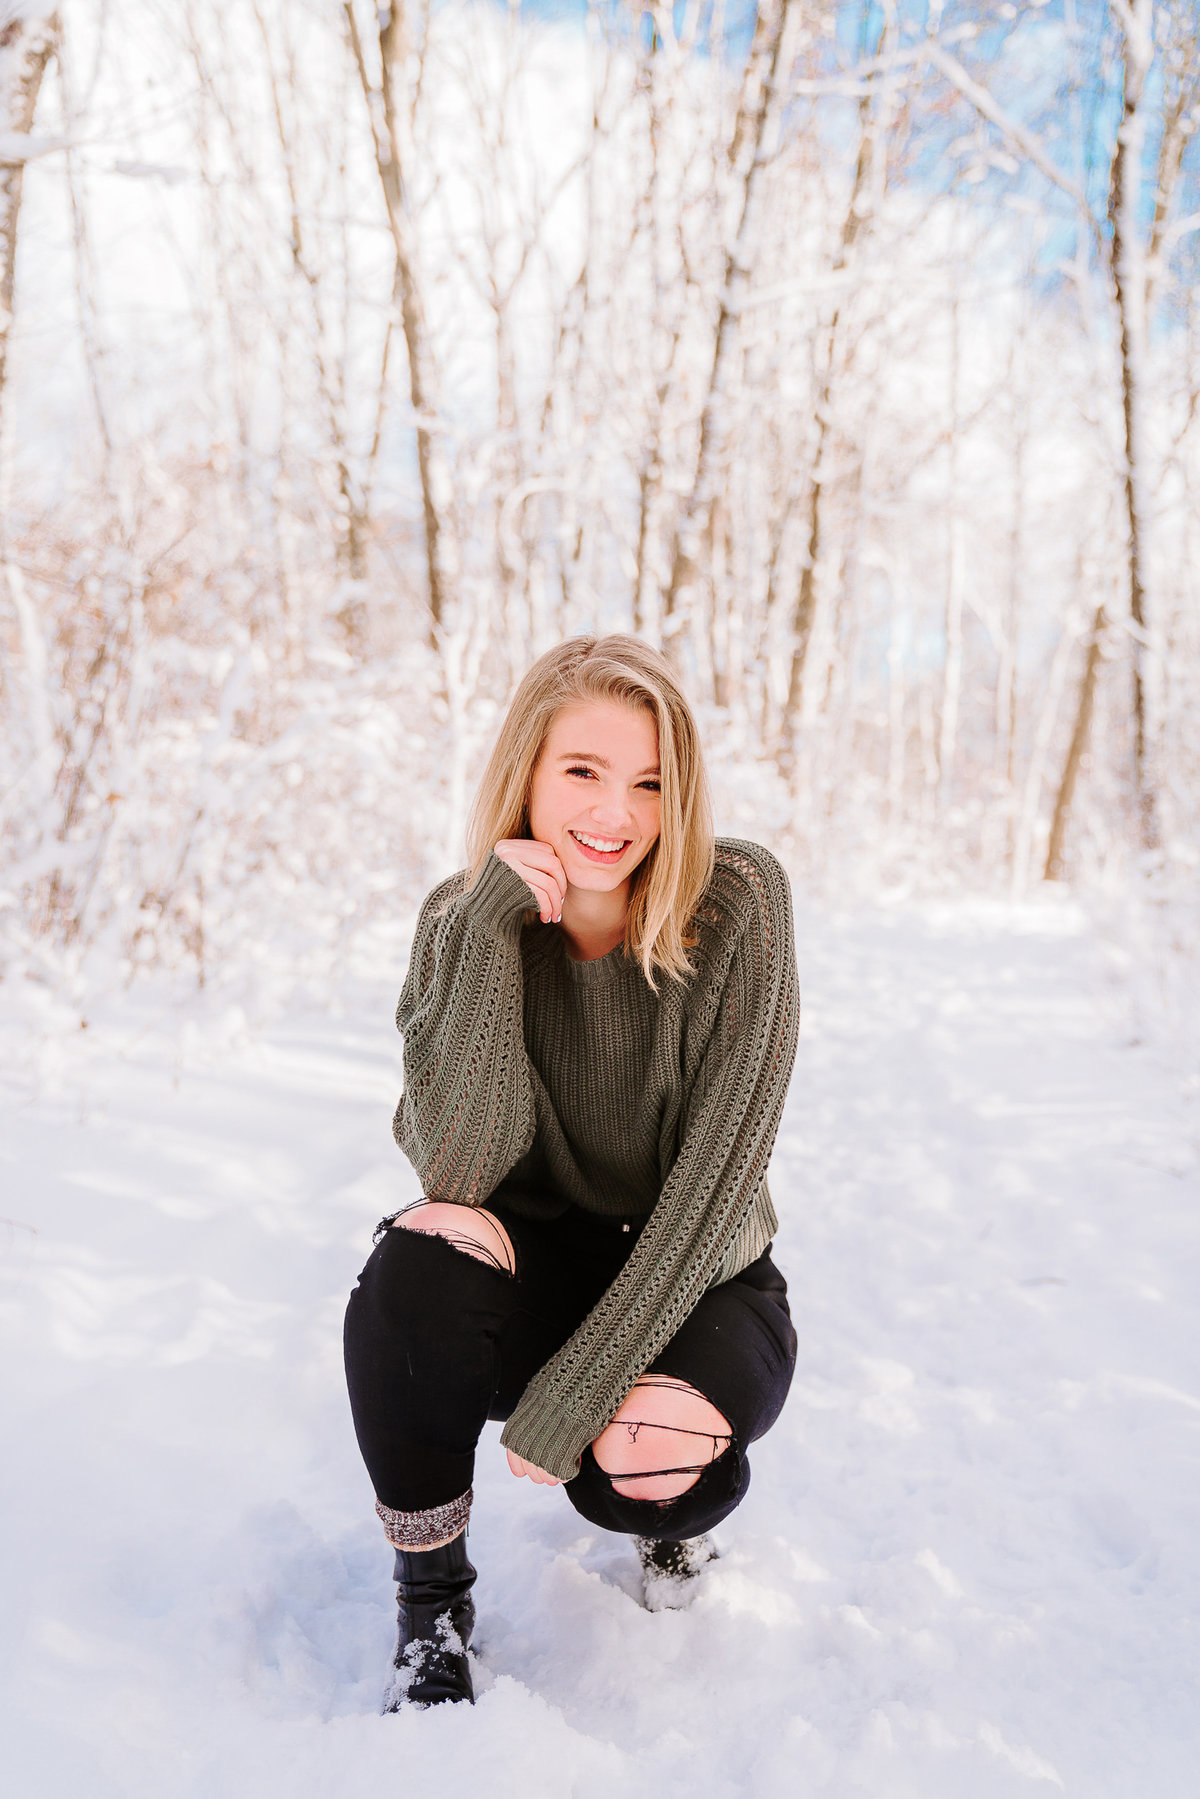 high school senior in snow lillian anderson arboretum kalamazoo MI